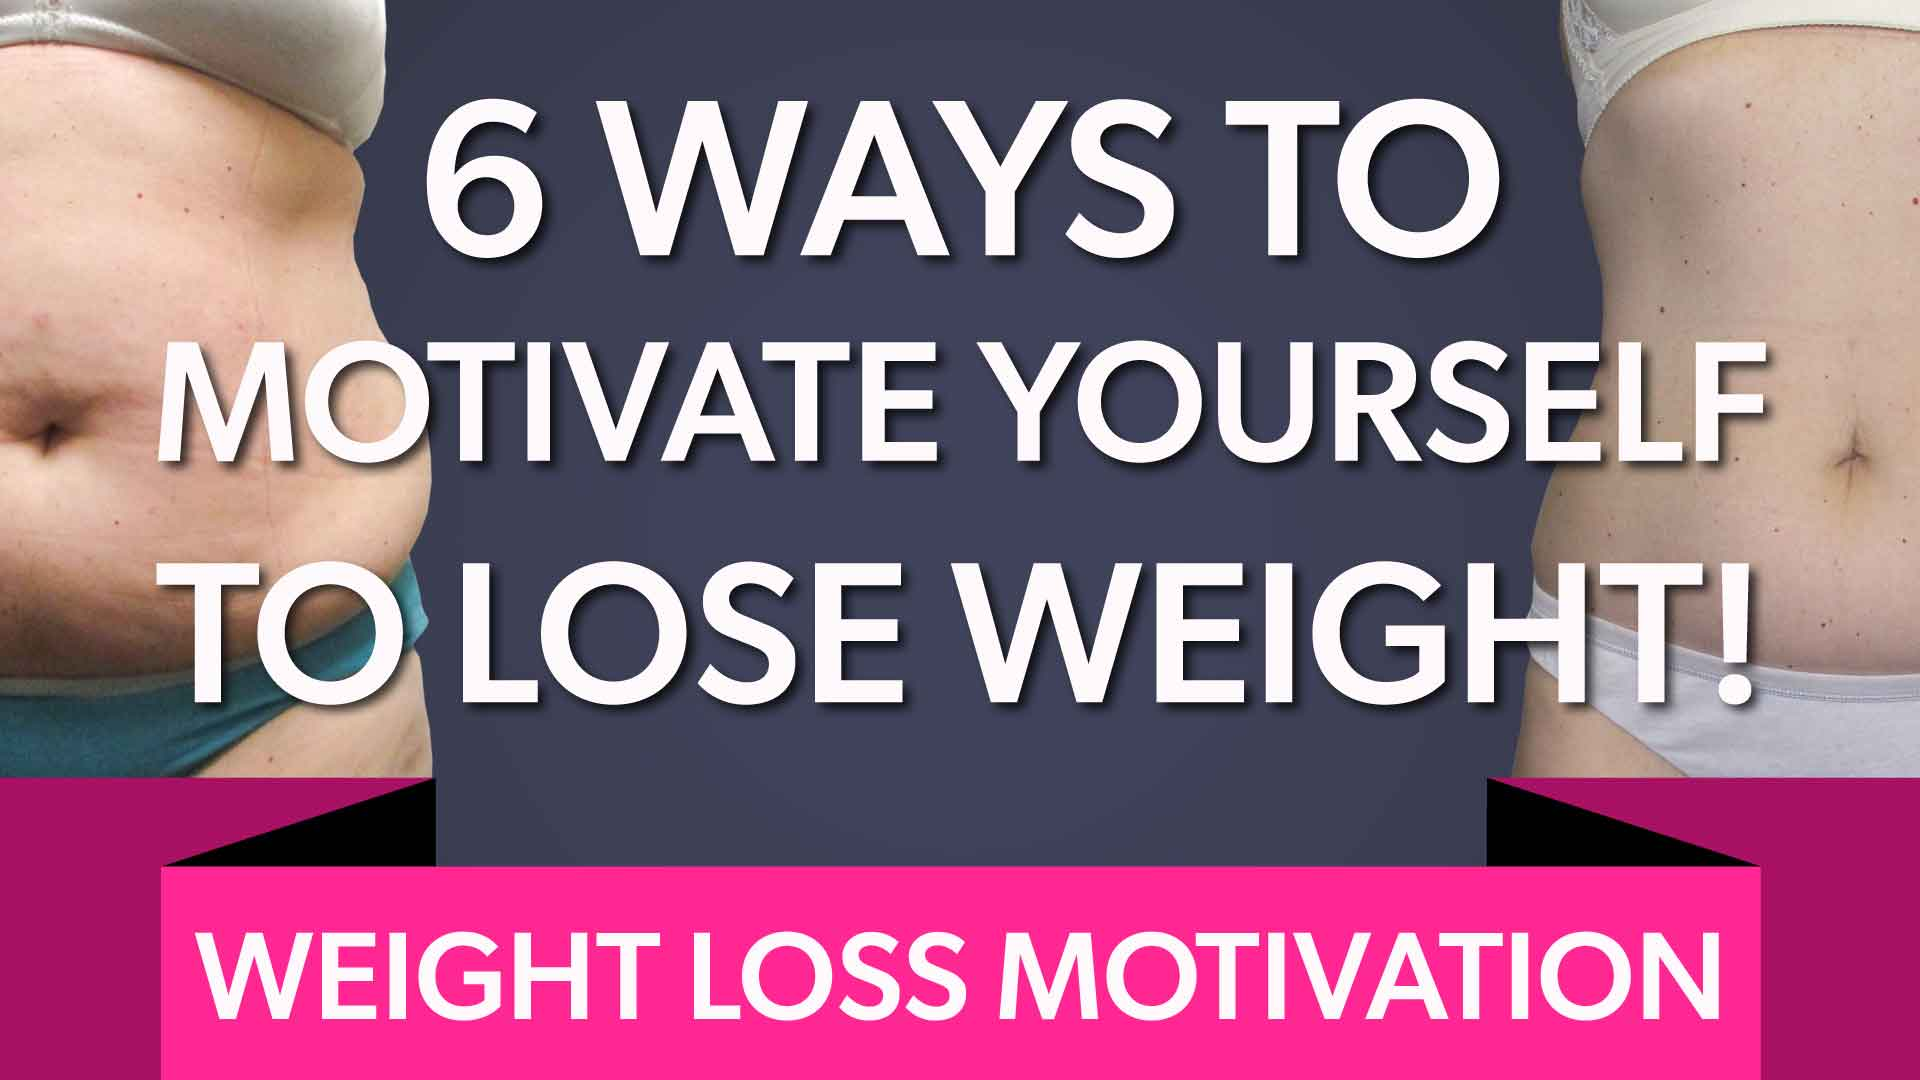 fast fit 6 ways to motivate yourself to lose weight body sculpting weight loss fat loss red light therapy